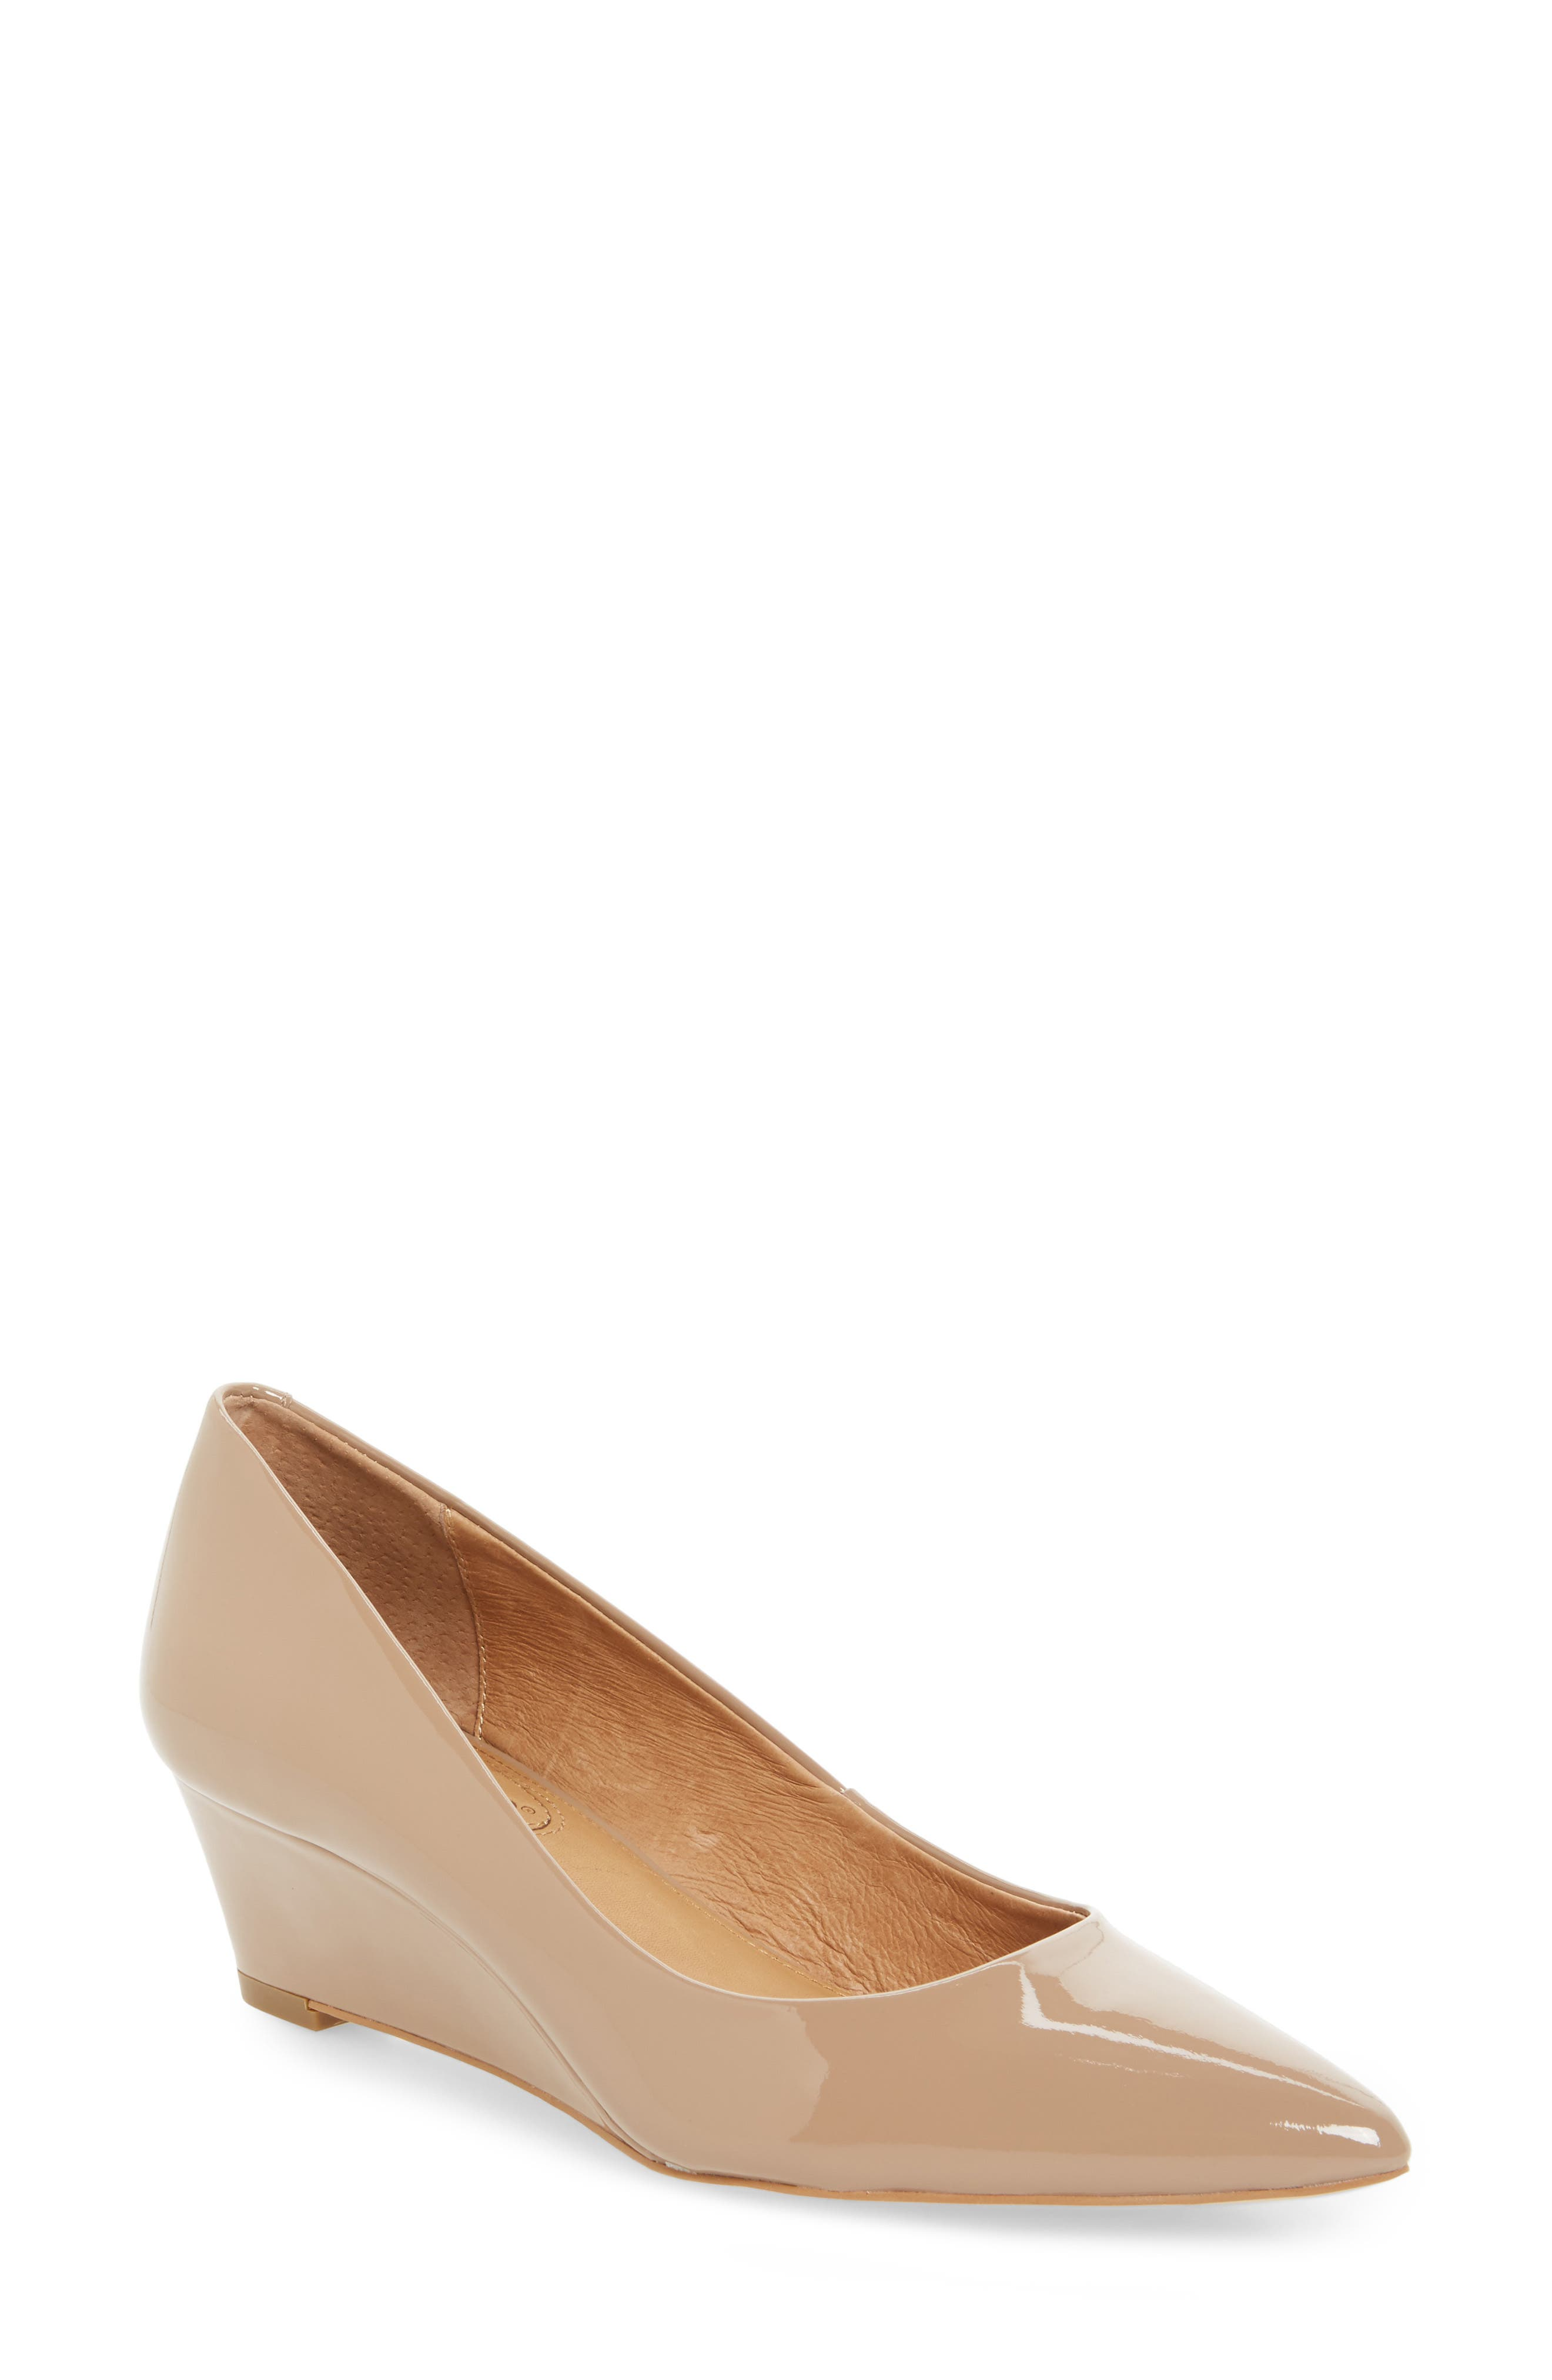 Main Image - Corso Como Nelly Pointy Toe Wedge Pump (Women)